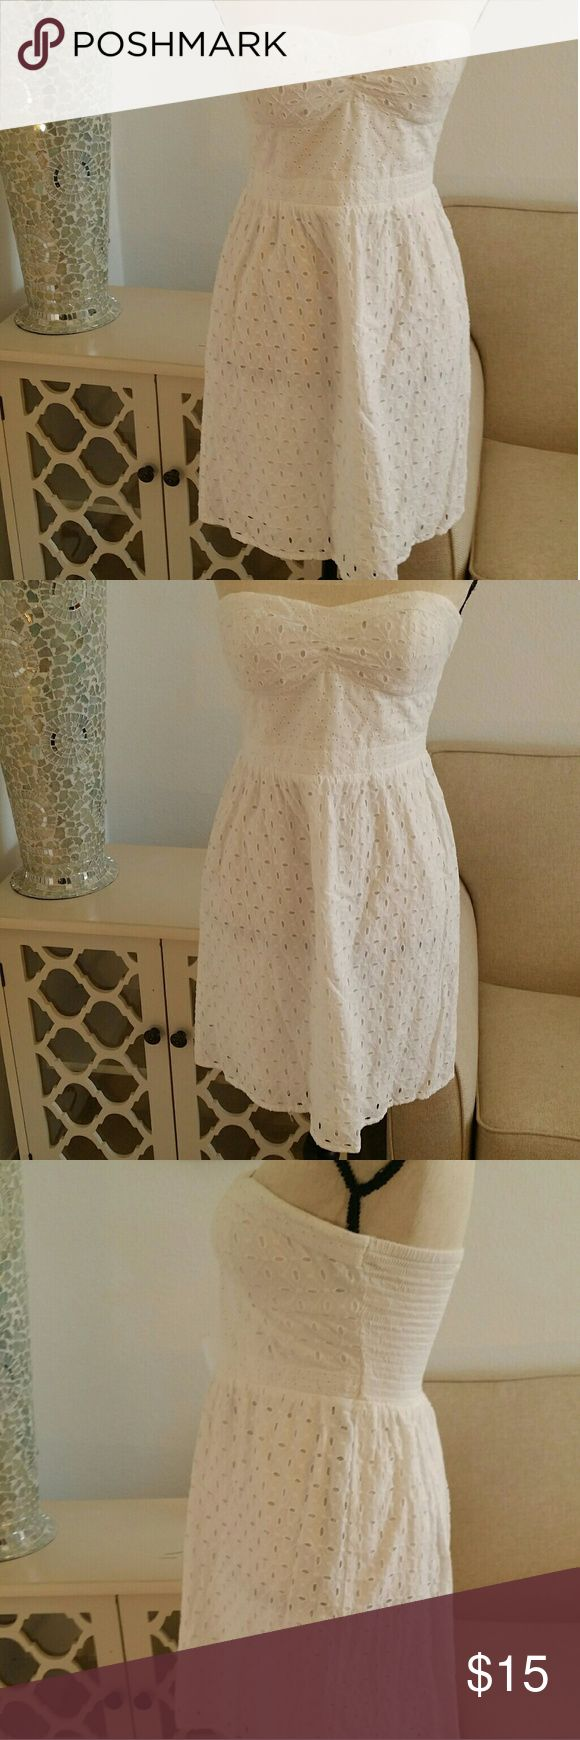 American Eagle Outfitter white sundress American Eagle Outfitters white sun dress. Super cute!   Just in time for the summer! Cute floral pattern and elastic back. SIZE 2 American Eagle Outfitters Dresses Strapless